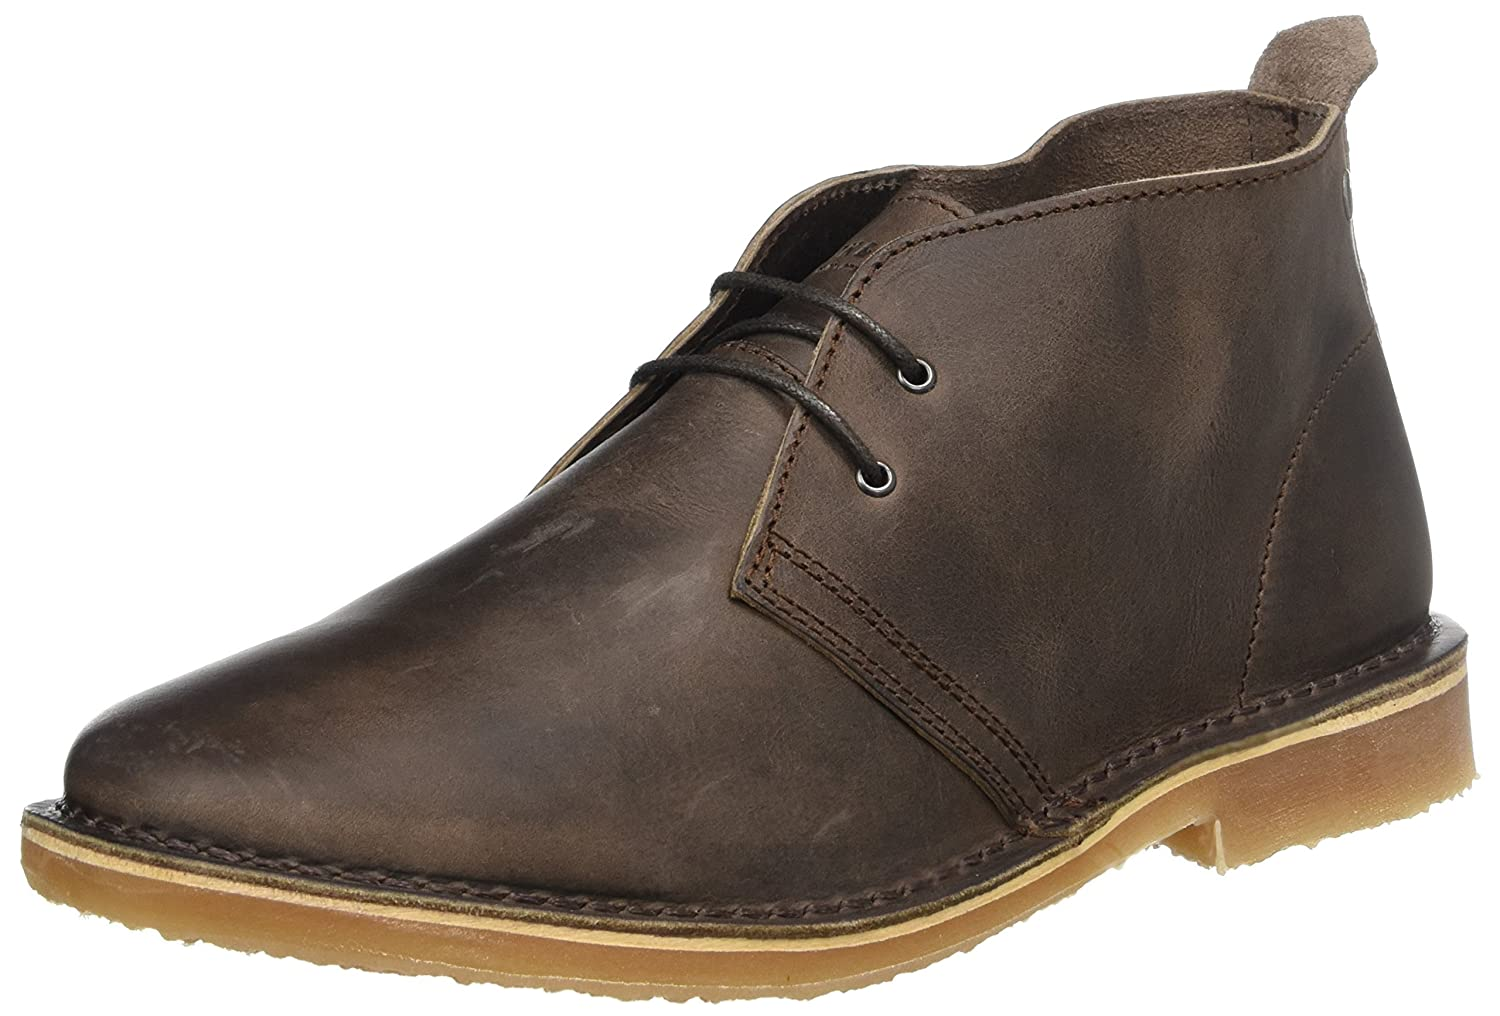 TALLA 40 EU. Jack & Jones Jfwgobi Leather Chocolate Brown, Botas Desert para Hombre